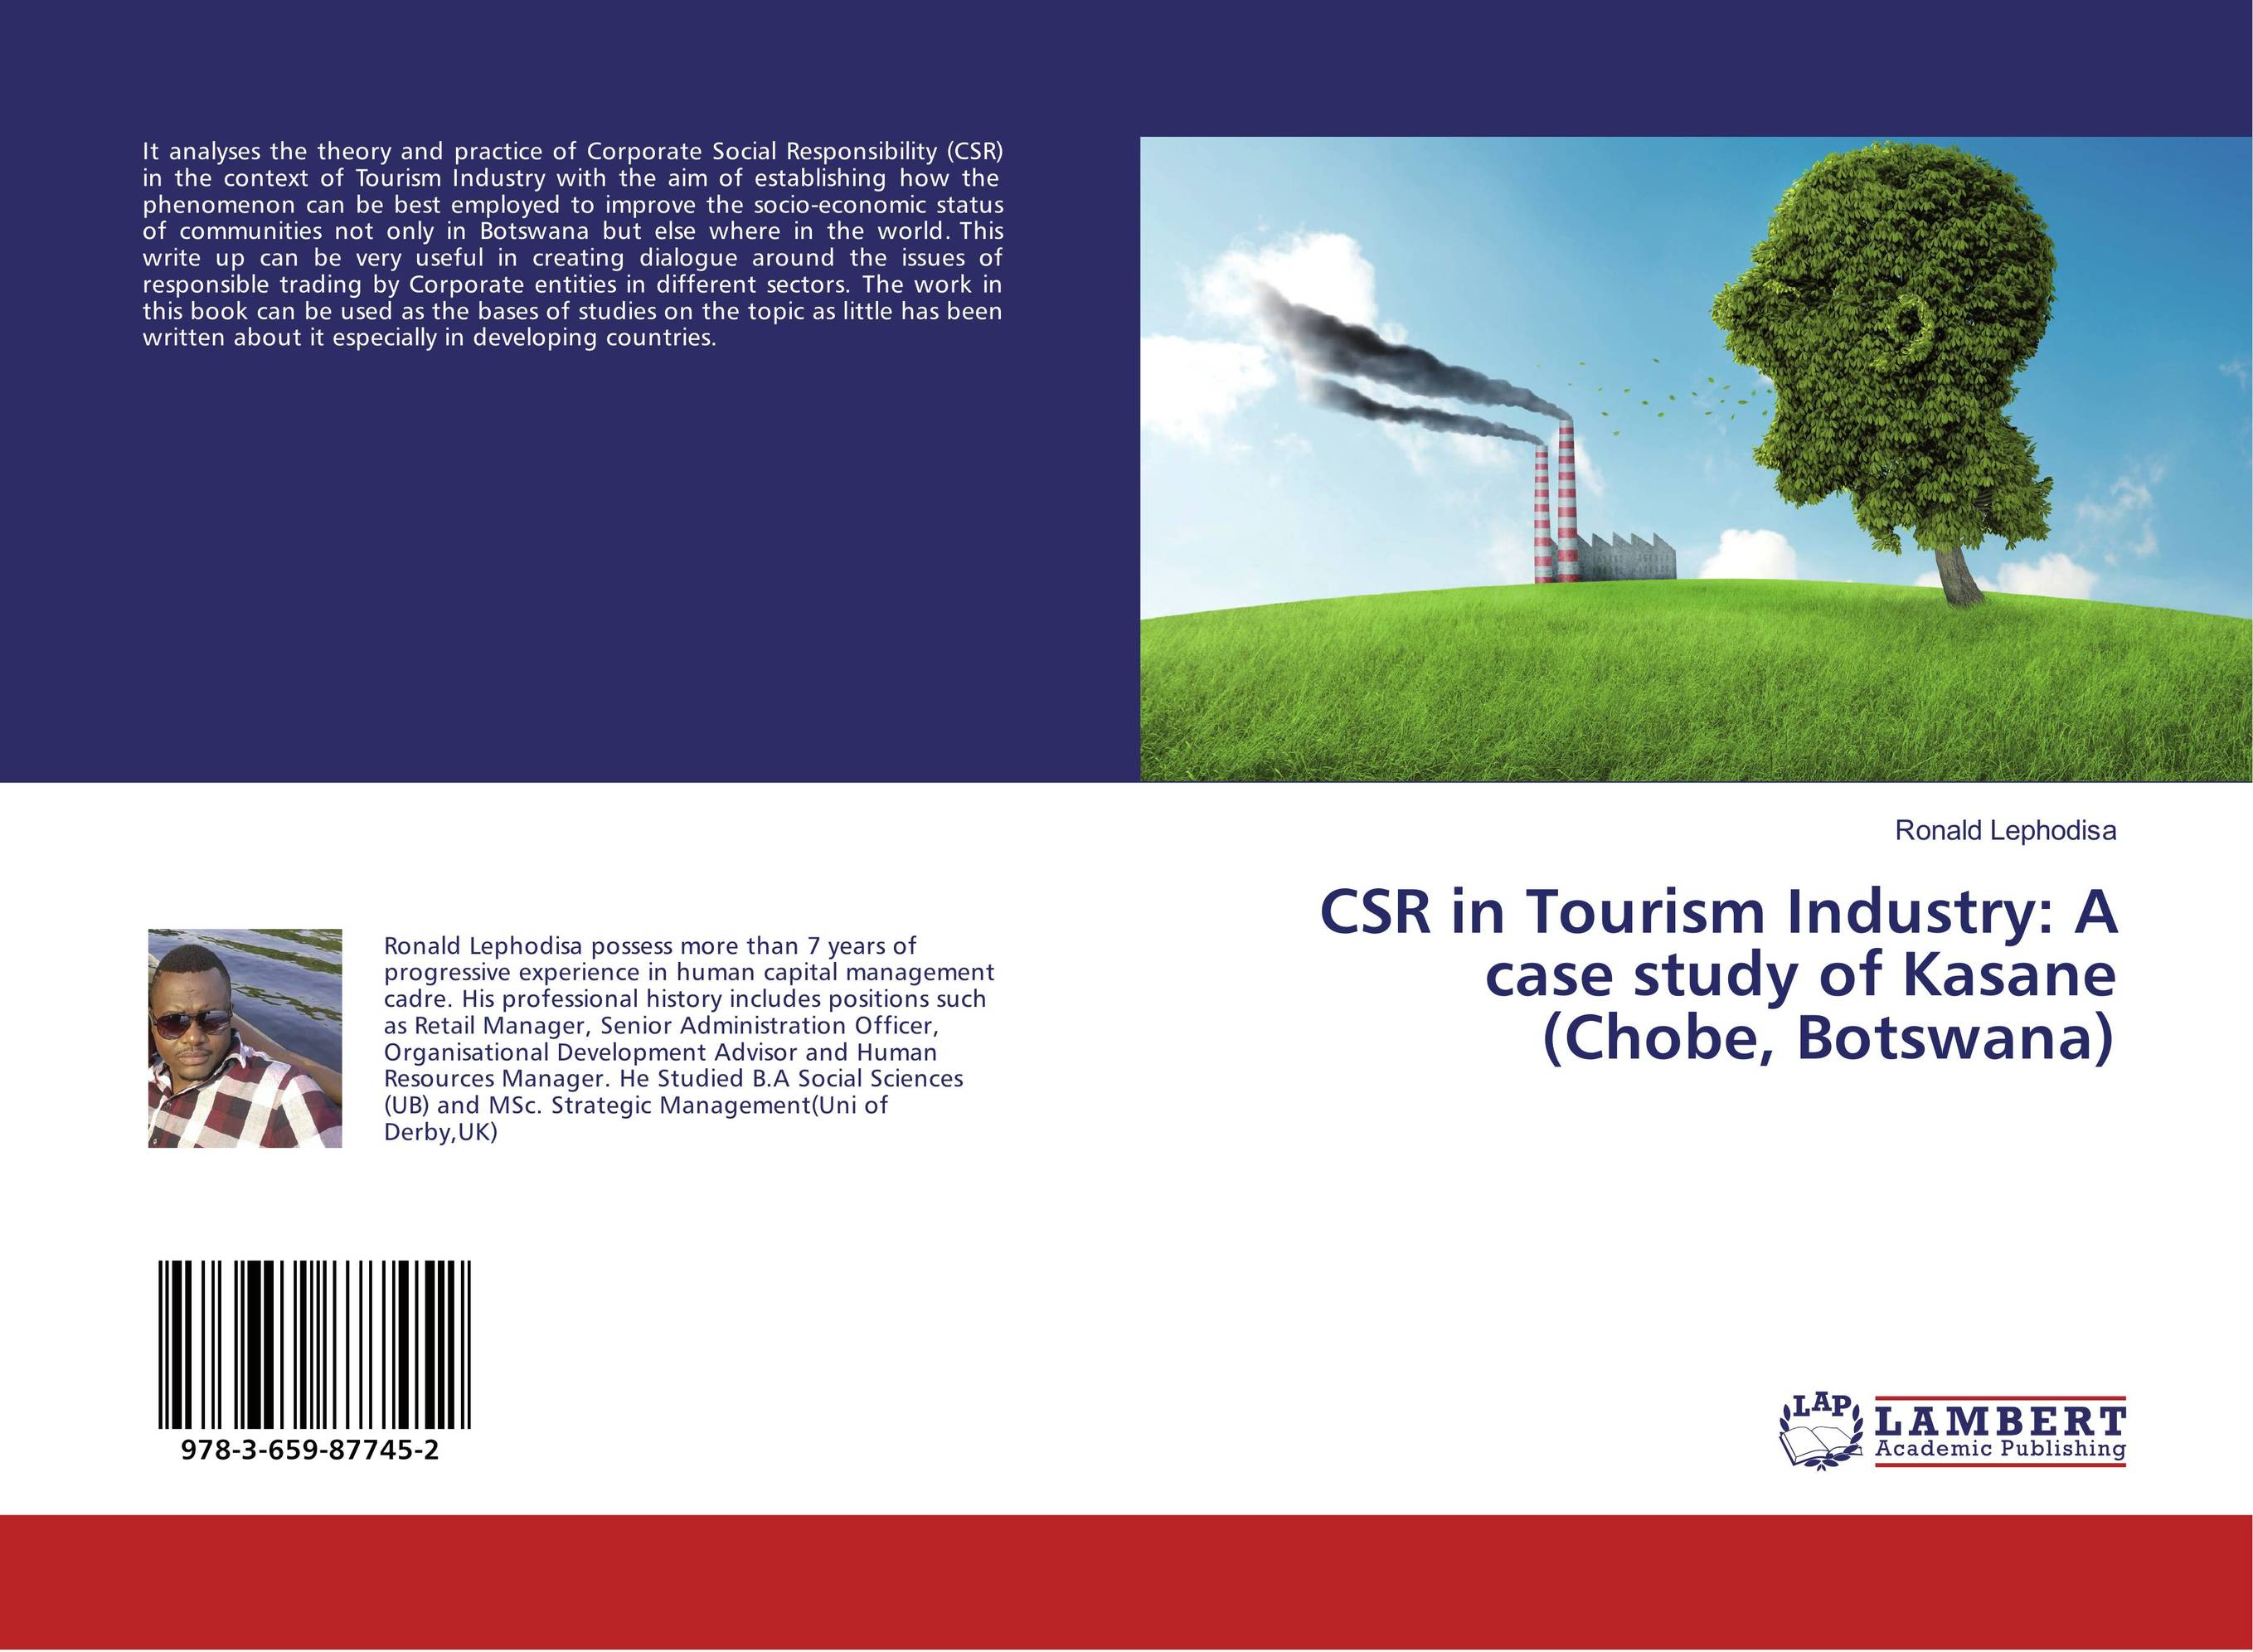 CSR in Tourism Industry: A case study of Kasane (Chobe, Botswana)